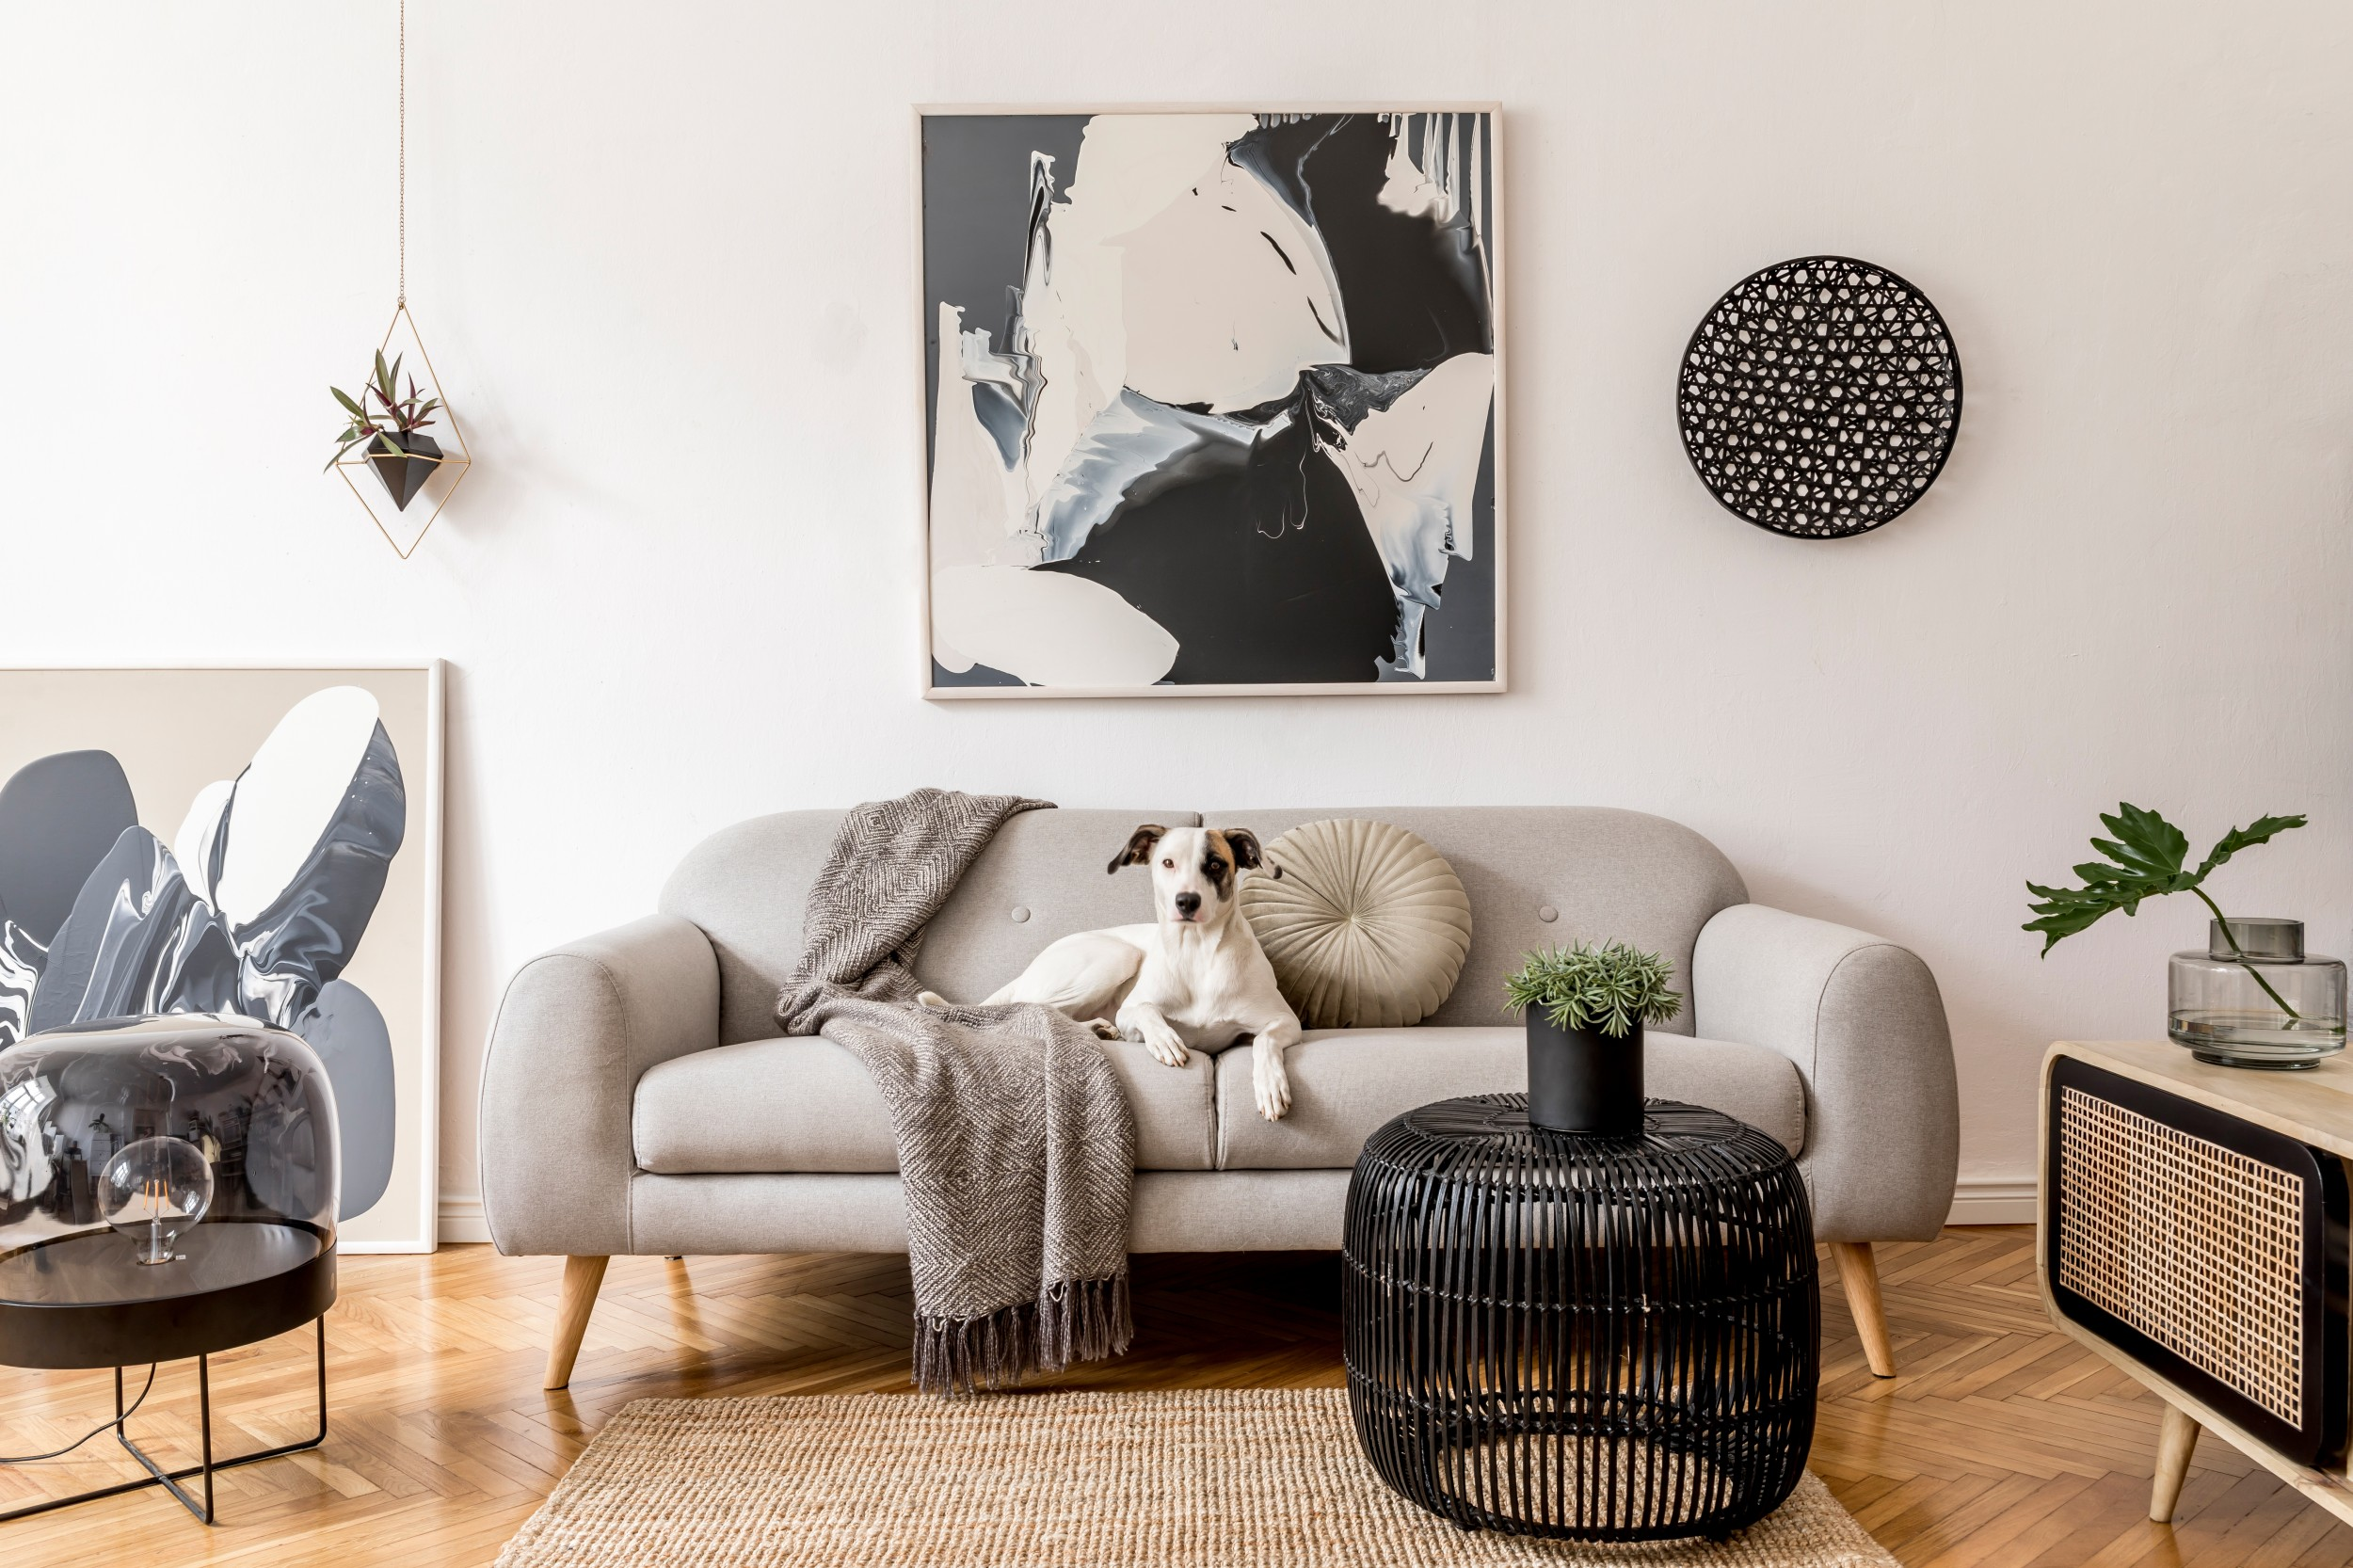 The top interior design trends of 2021